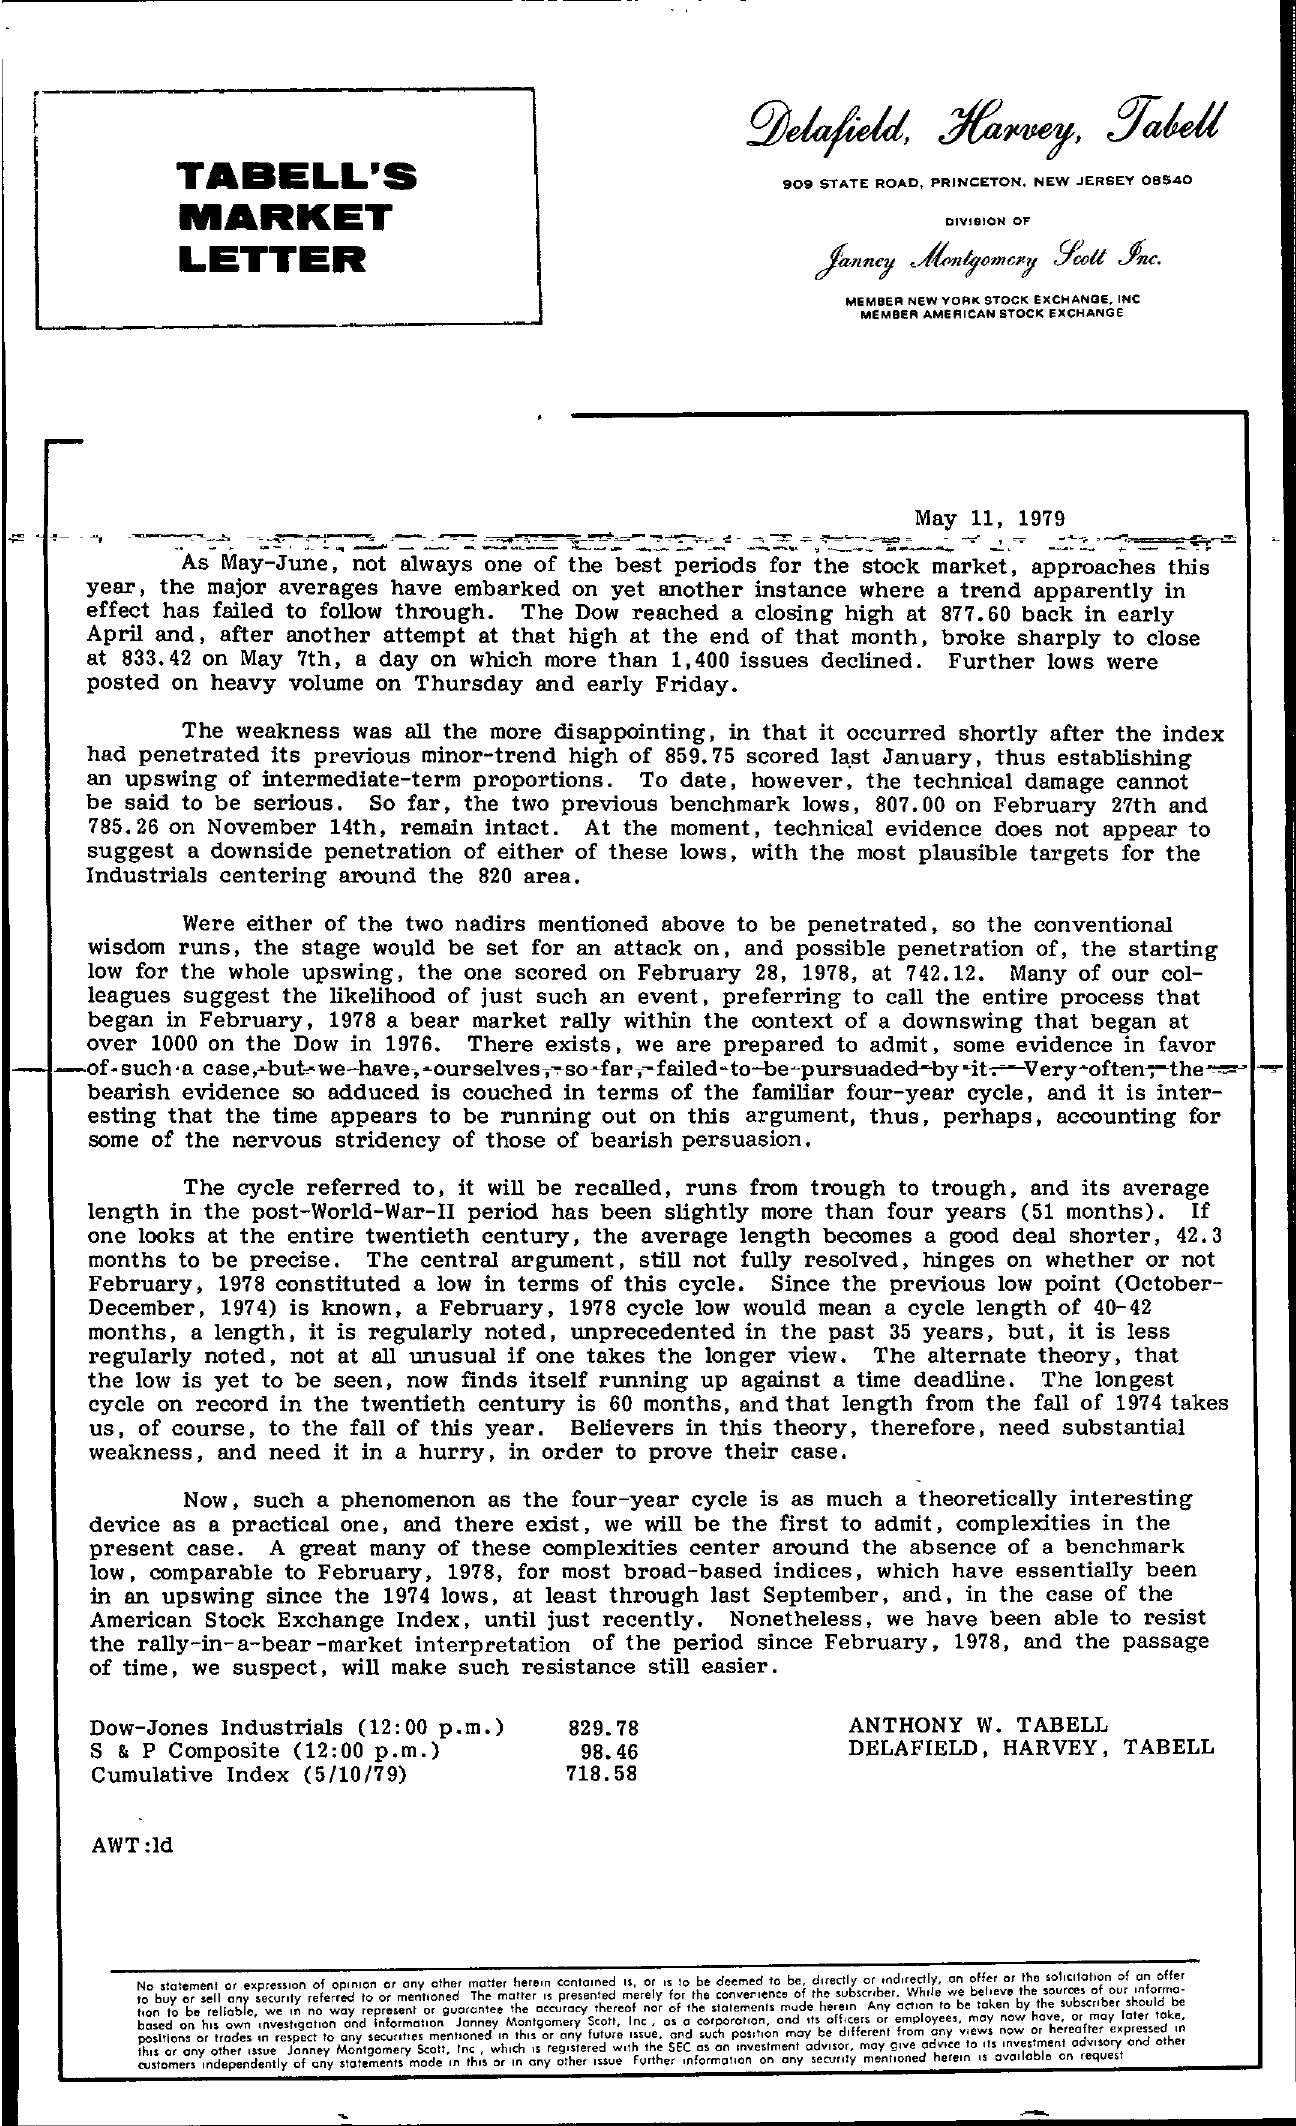 Tabell's Market Letter - May 11, 1979